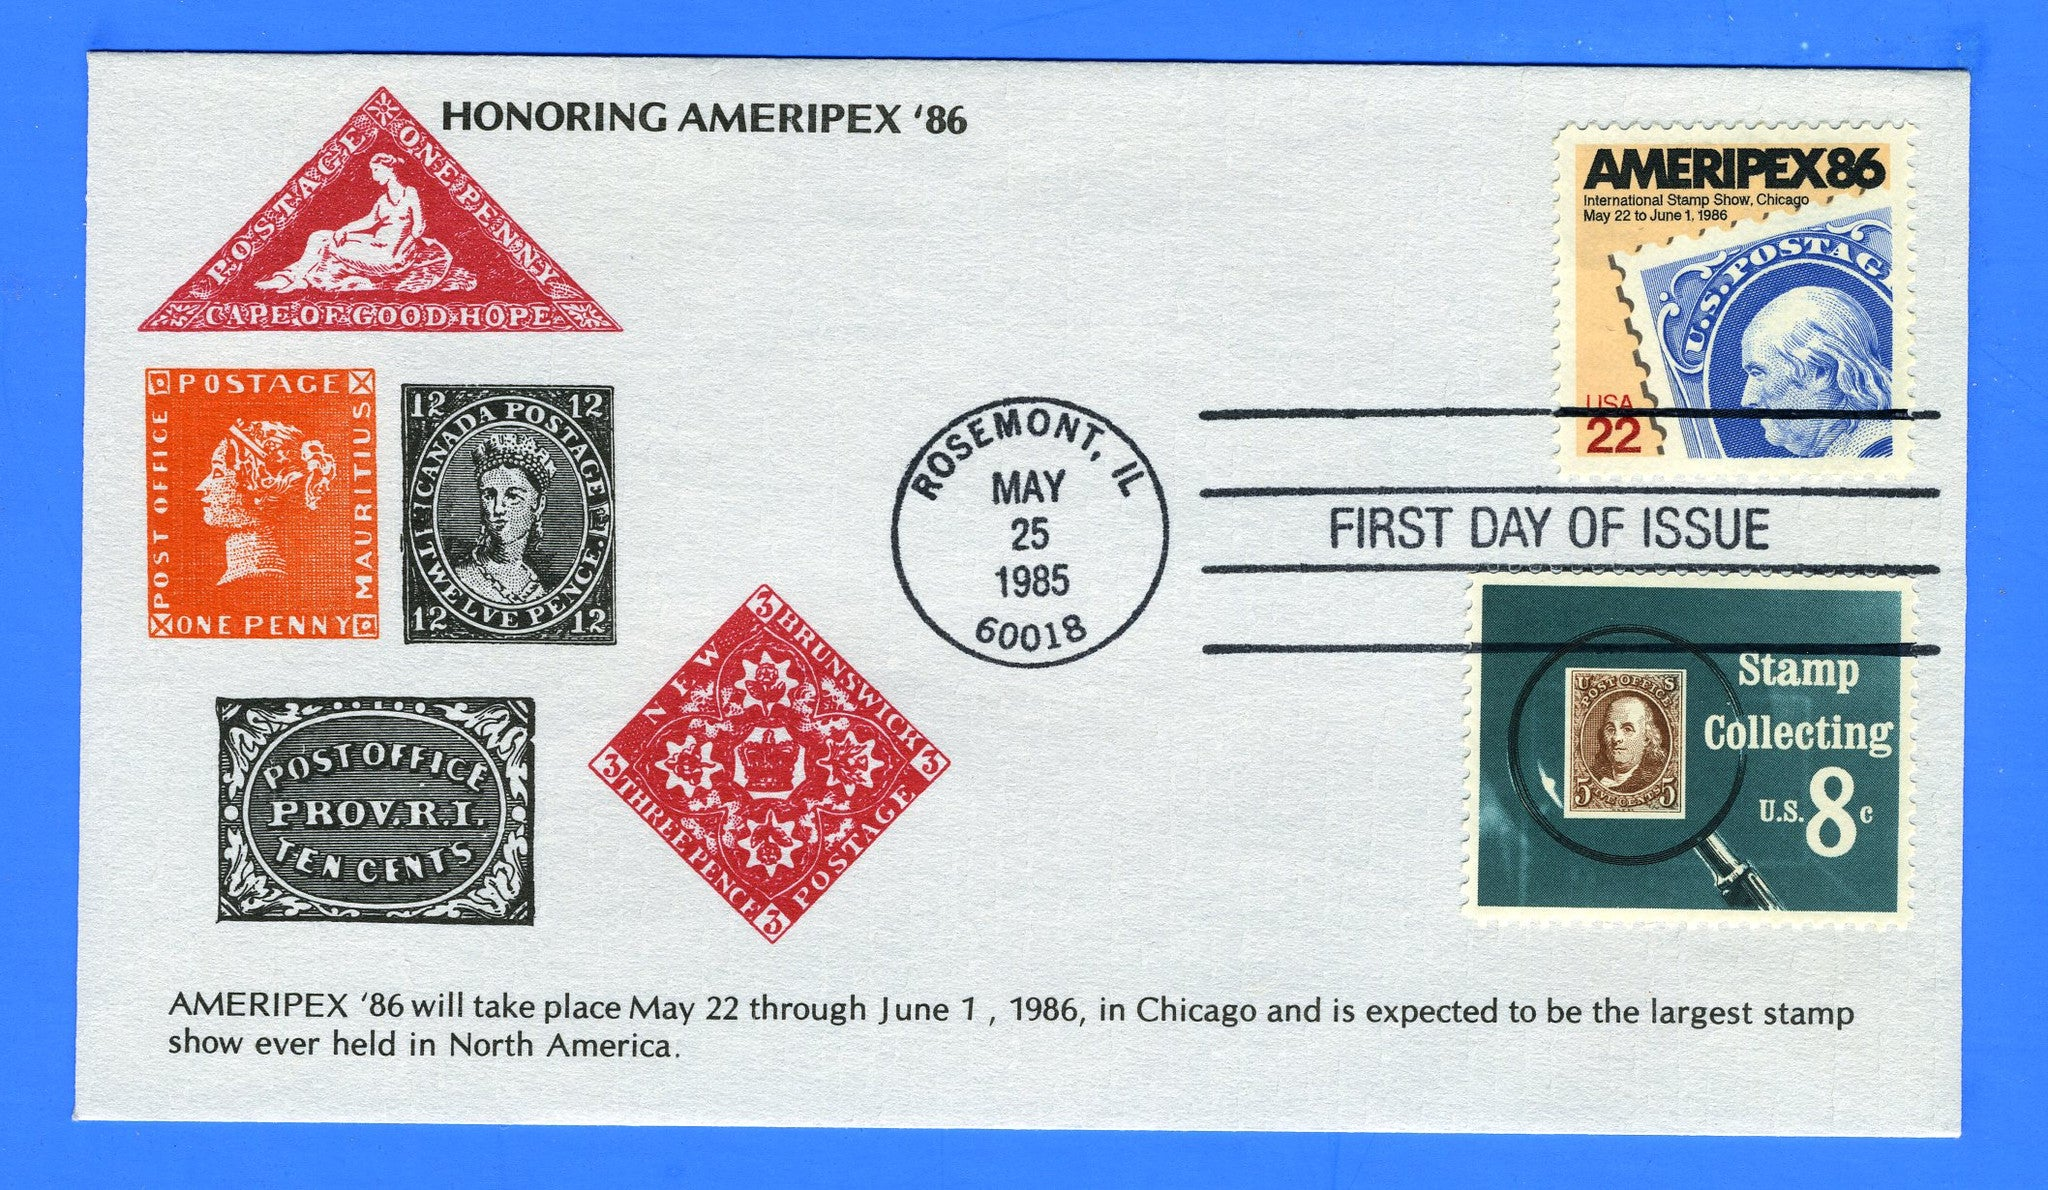 Scott 2145 22c AMERIPEX 86 Combo First Day Cover by KMC Venture